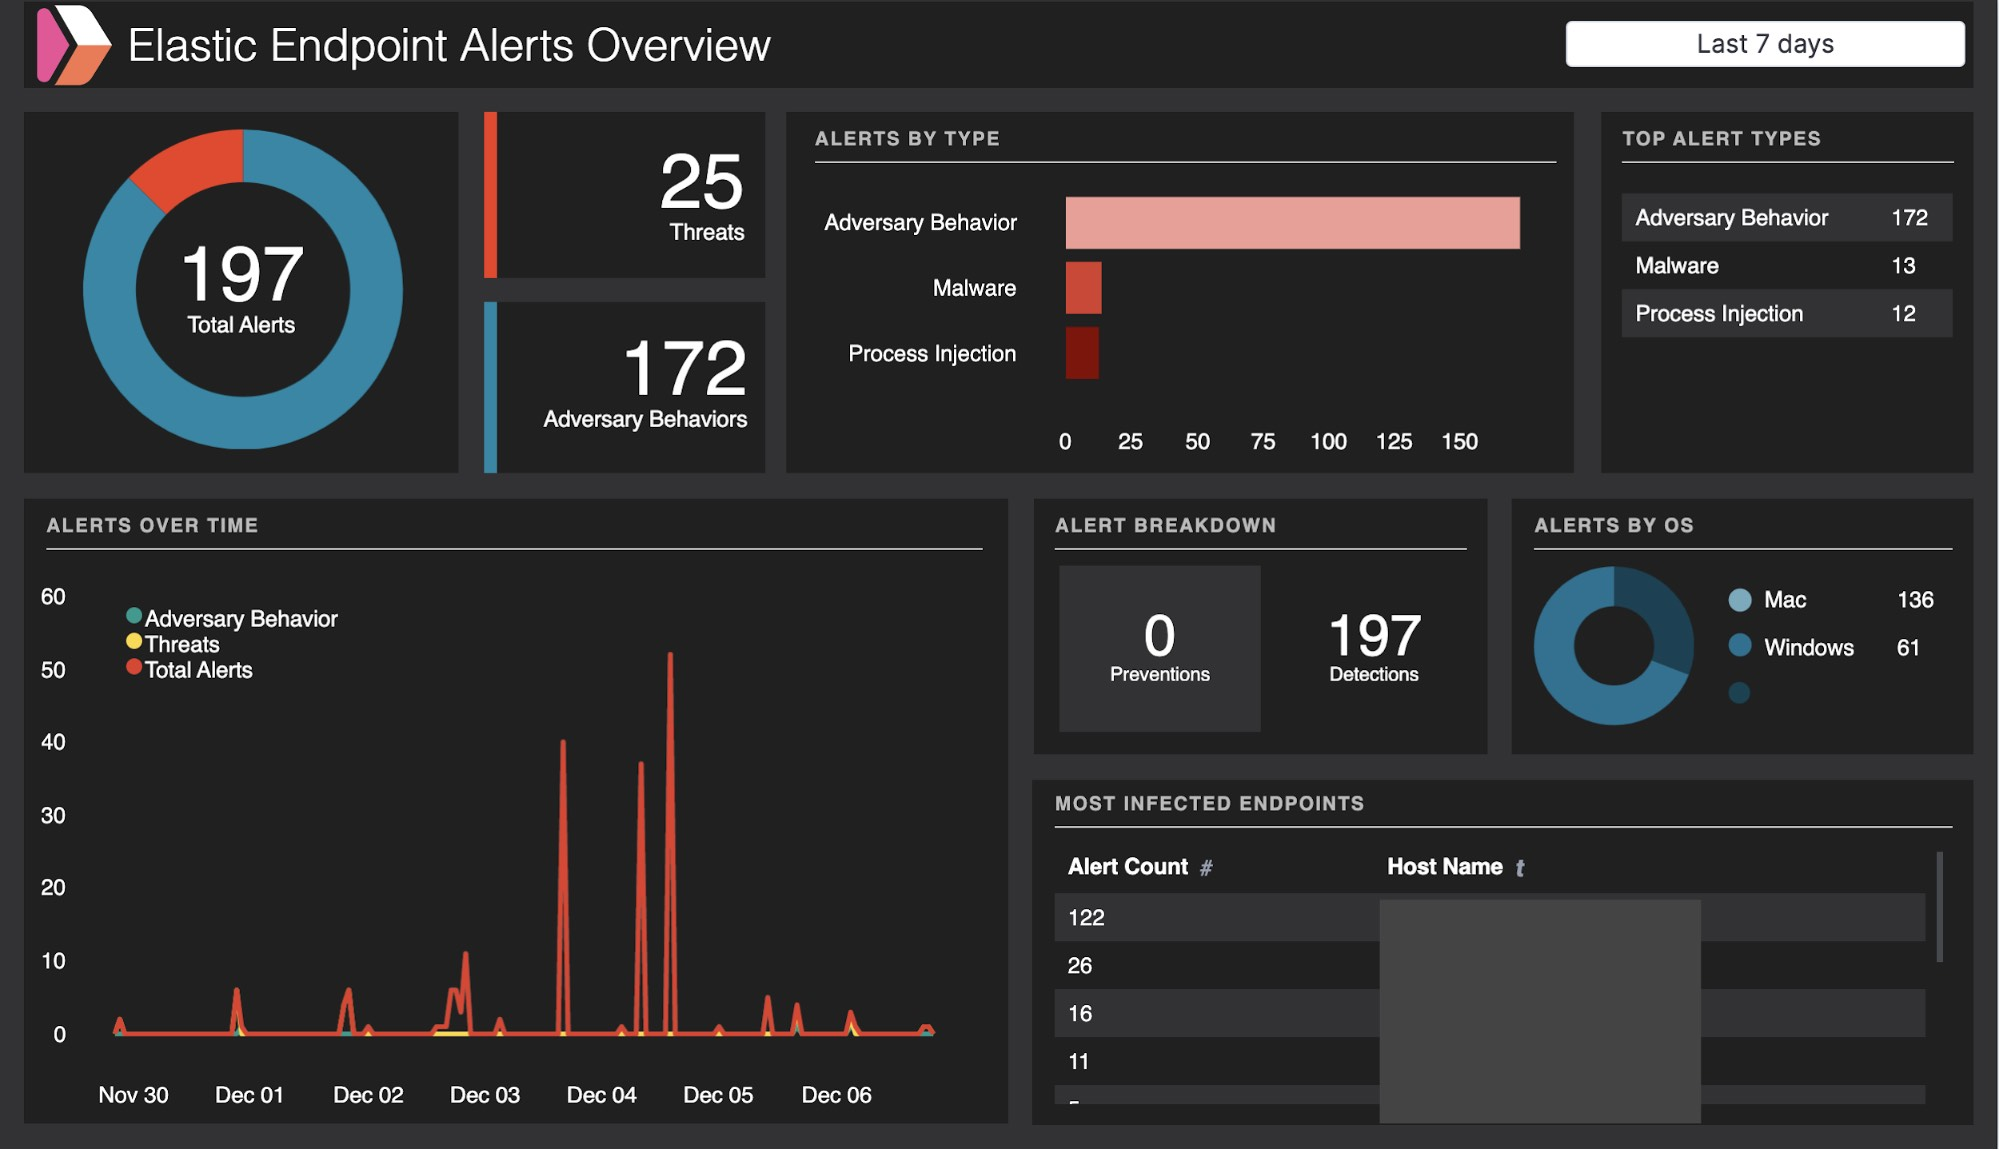 Securingendpoints-blog-canvas-dashboard-overview-Elastic-Endpoint-Alerts-1.jpg